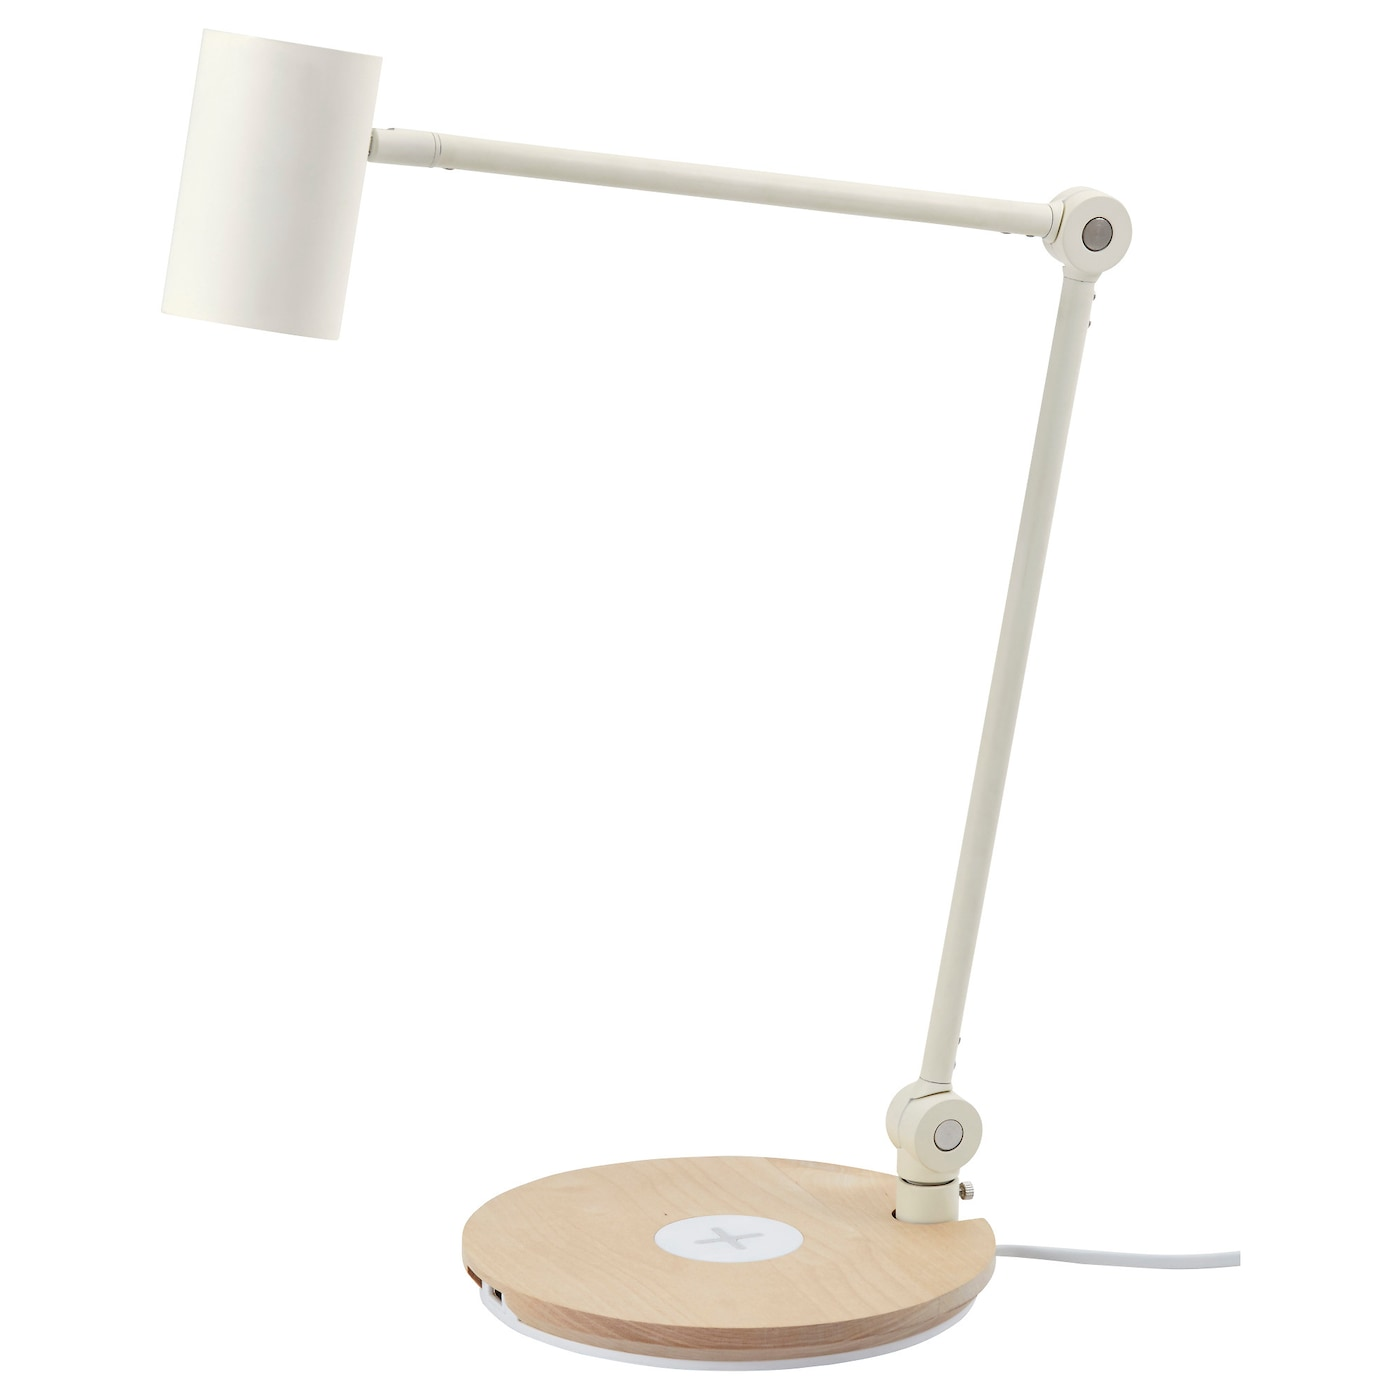 IKEA RIGGAD LED work lamp w wireless charging Provides a directed light that is great for reading.